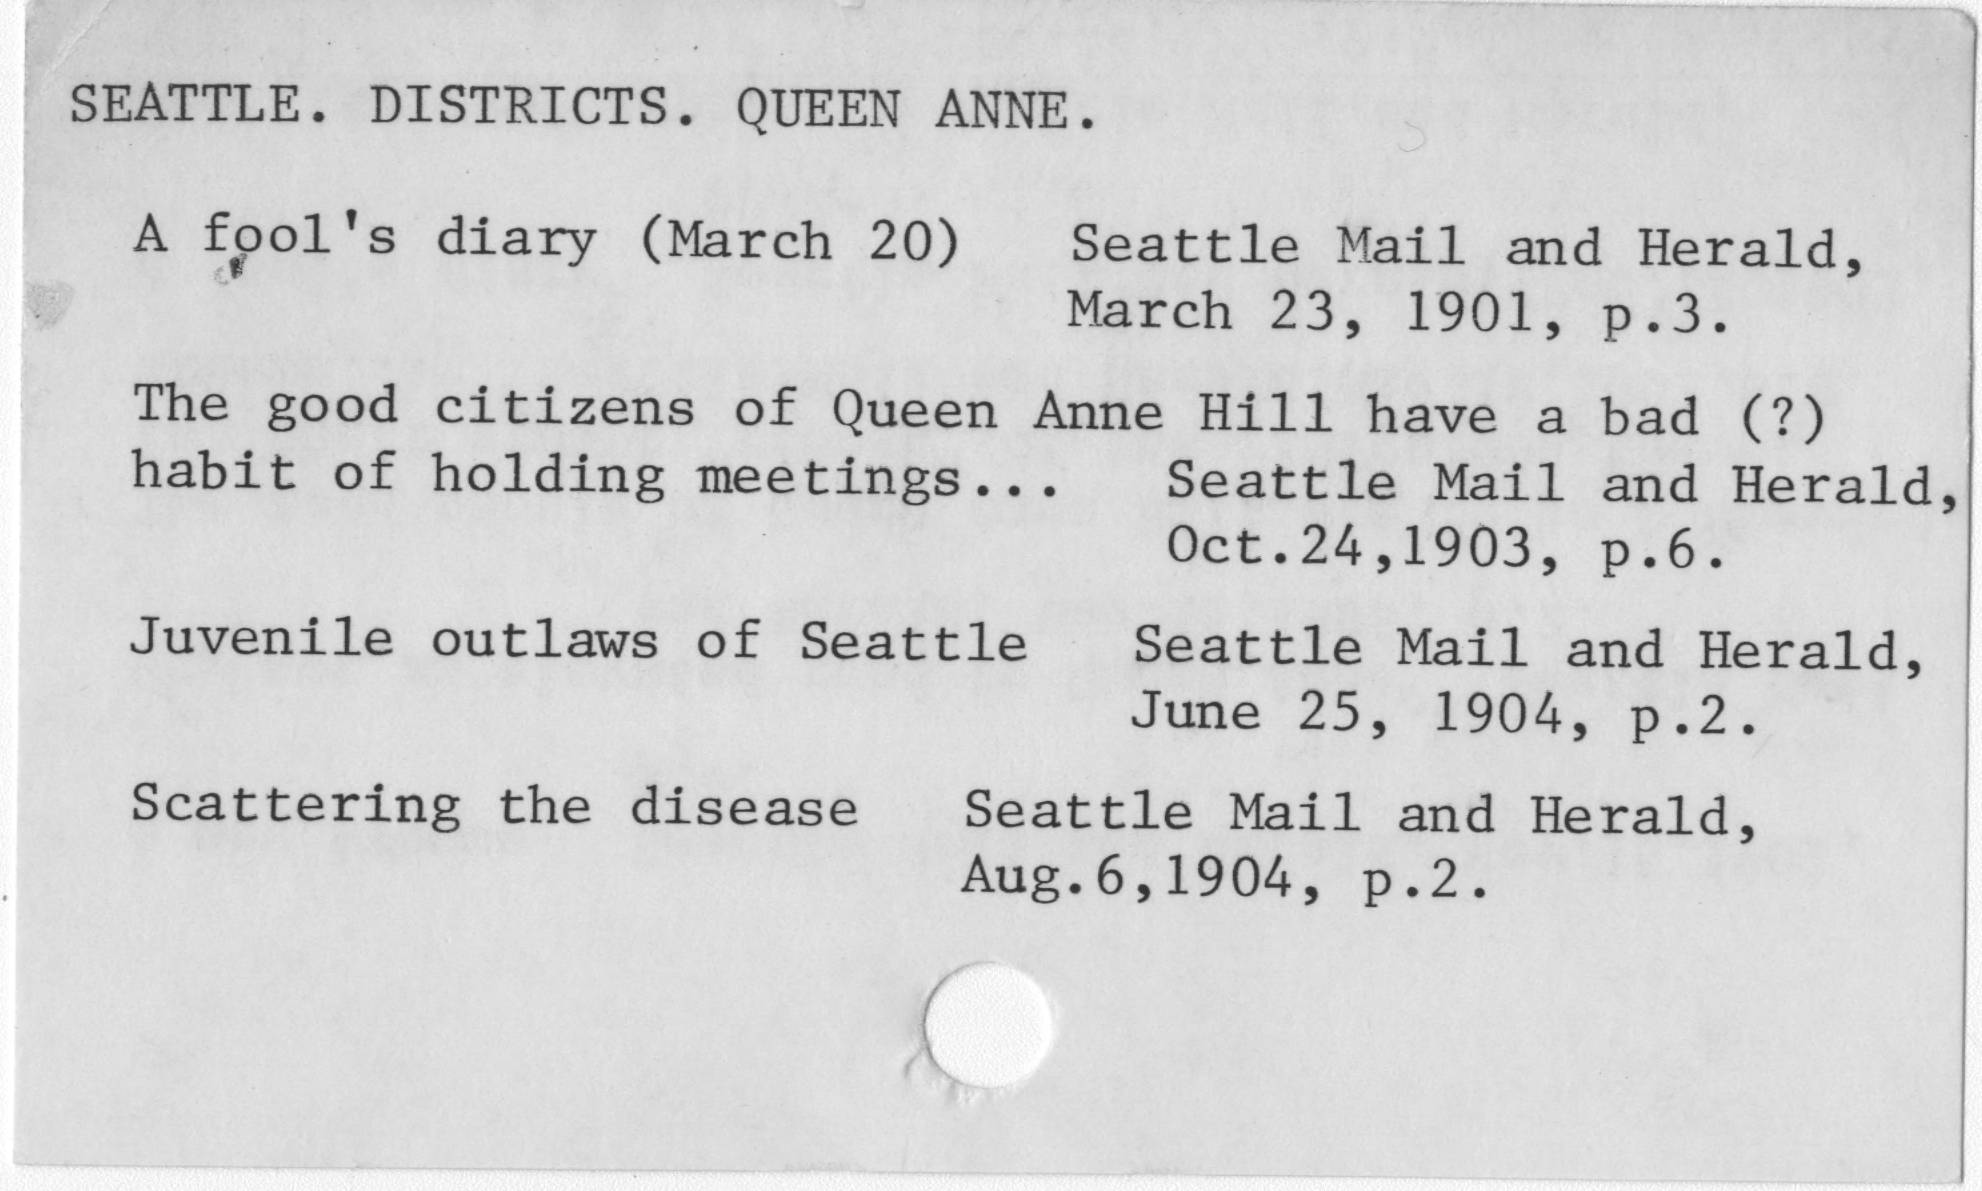 Seattle. Districts. Queen Anne.